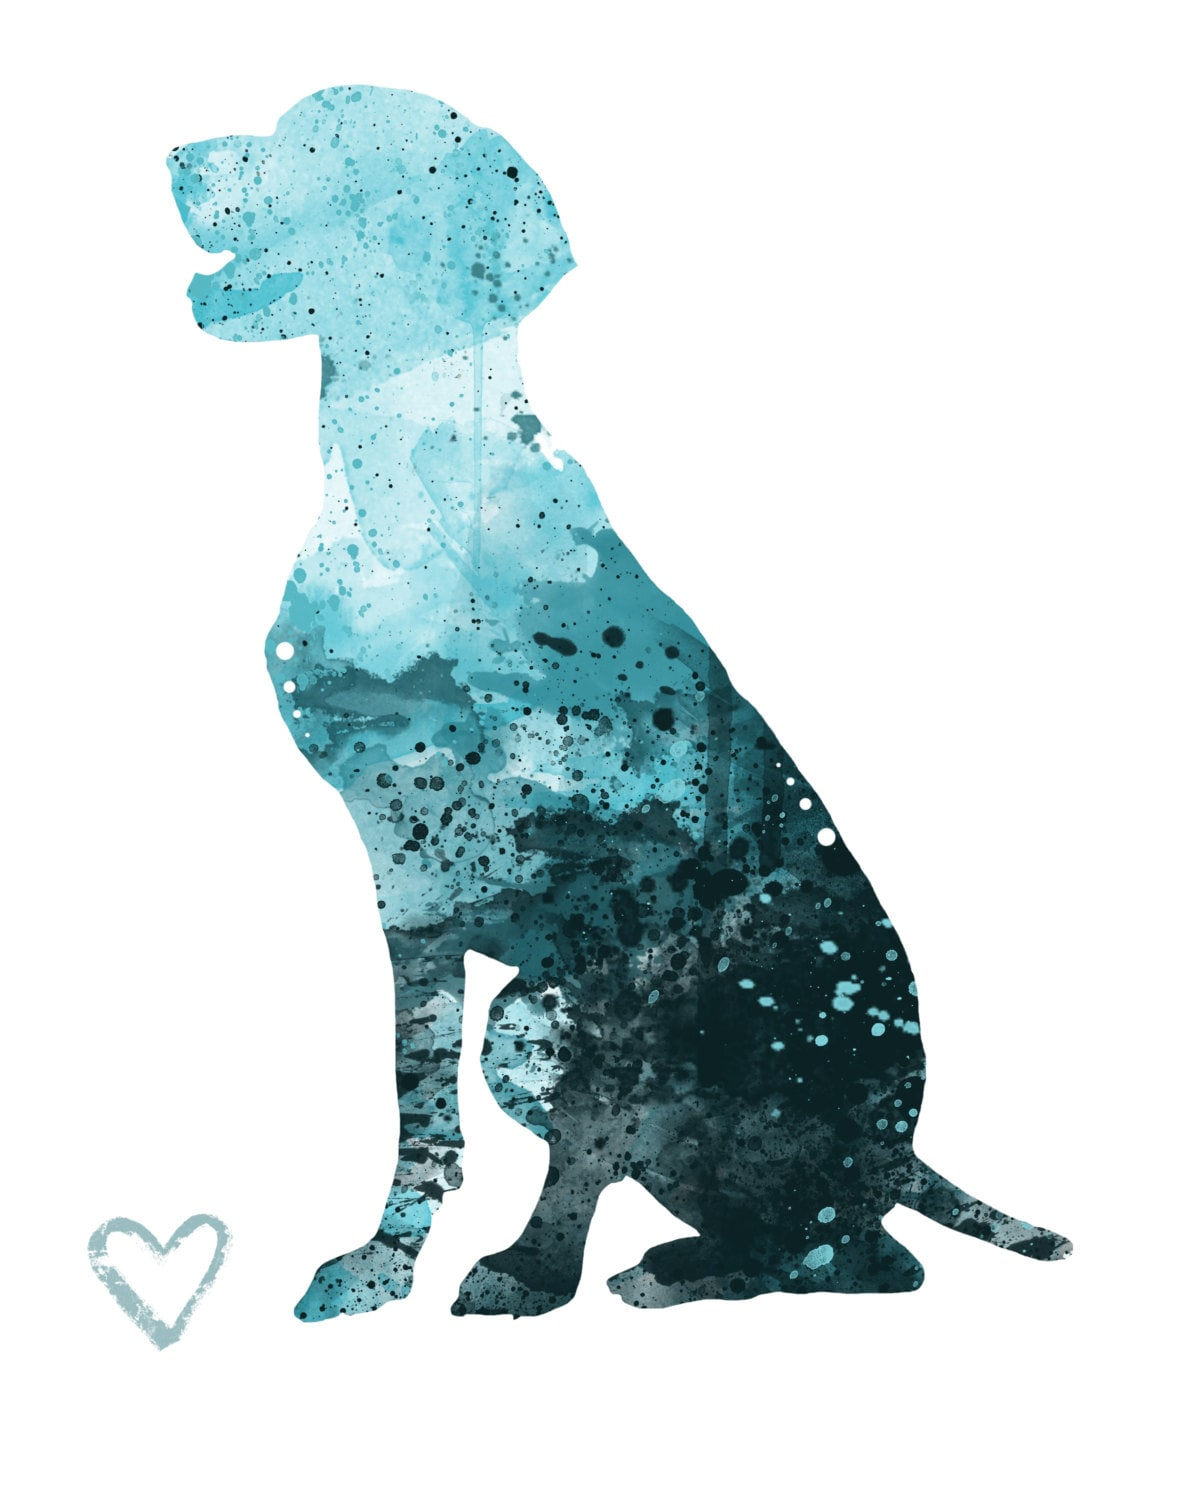 German Shorthaired Pointer Silhouette Watercolor Print | Etsy